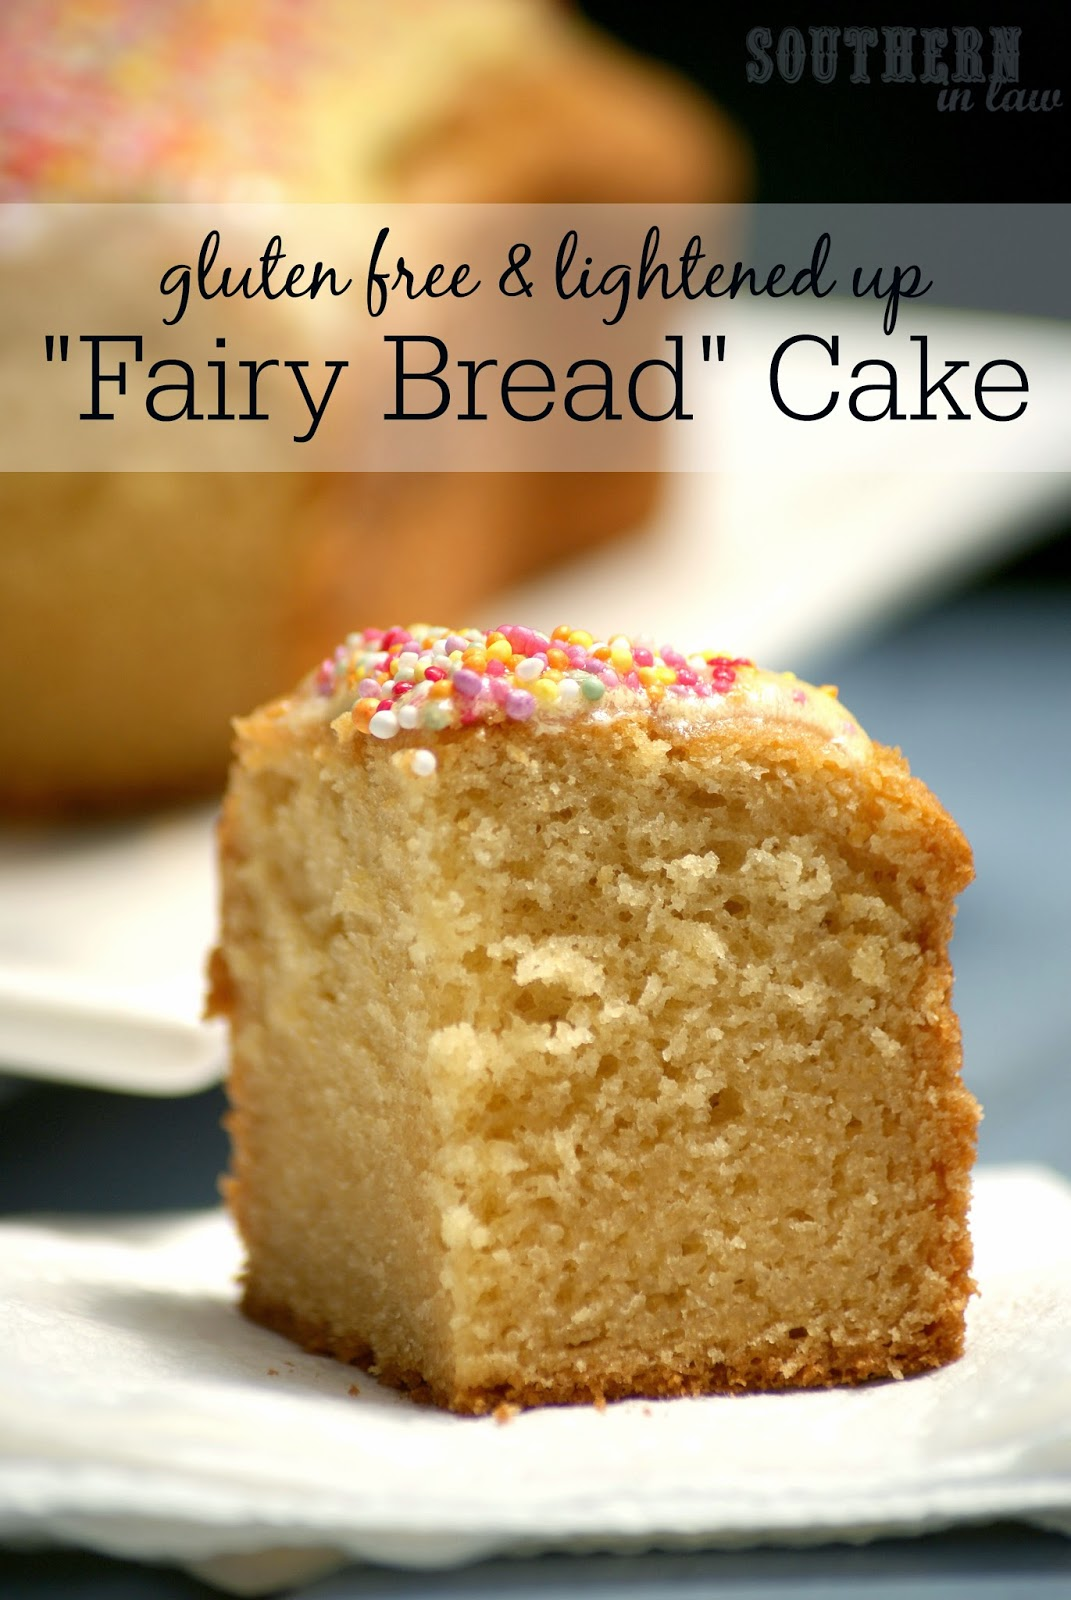 Healthy Fairy Bread Cake Recipe - Gluten Free Butter Cake Recipe - Lower fat, lower sugar, gluten free, kid friendly, healthy kids party recipes, cake recipes